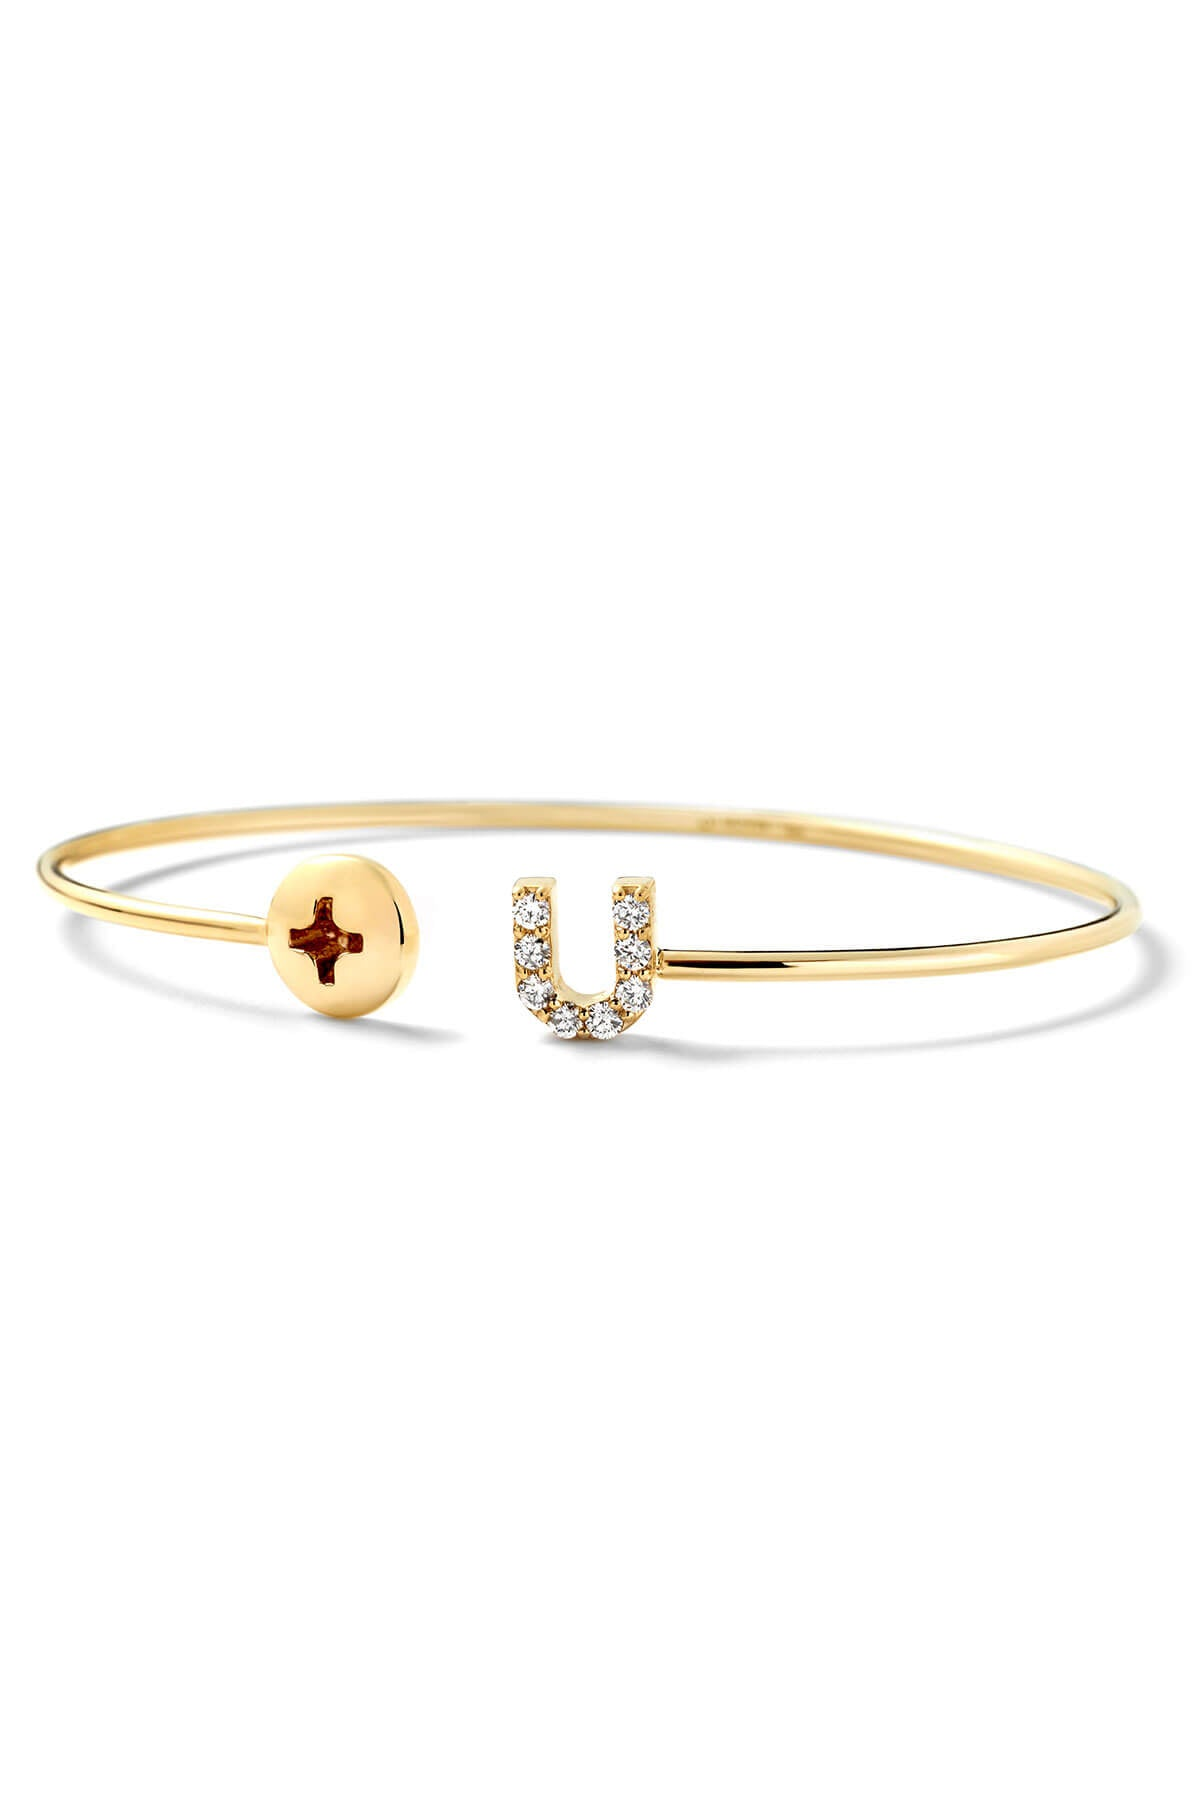 delicate bolt bracelet gold arm rose inlaid elegant screw dainty bangles bangle square candy